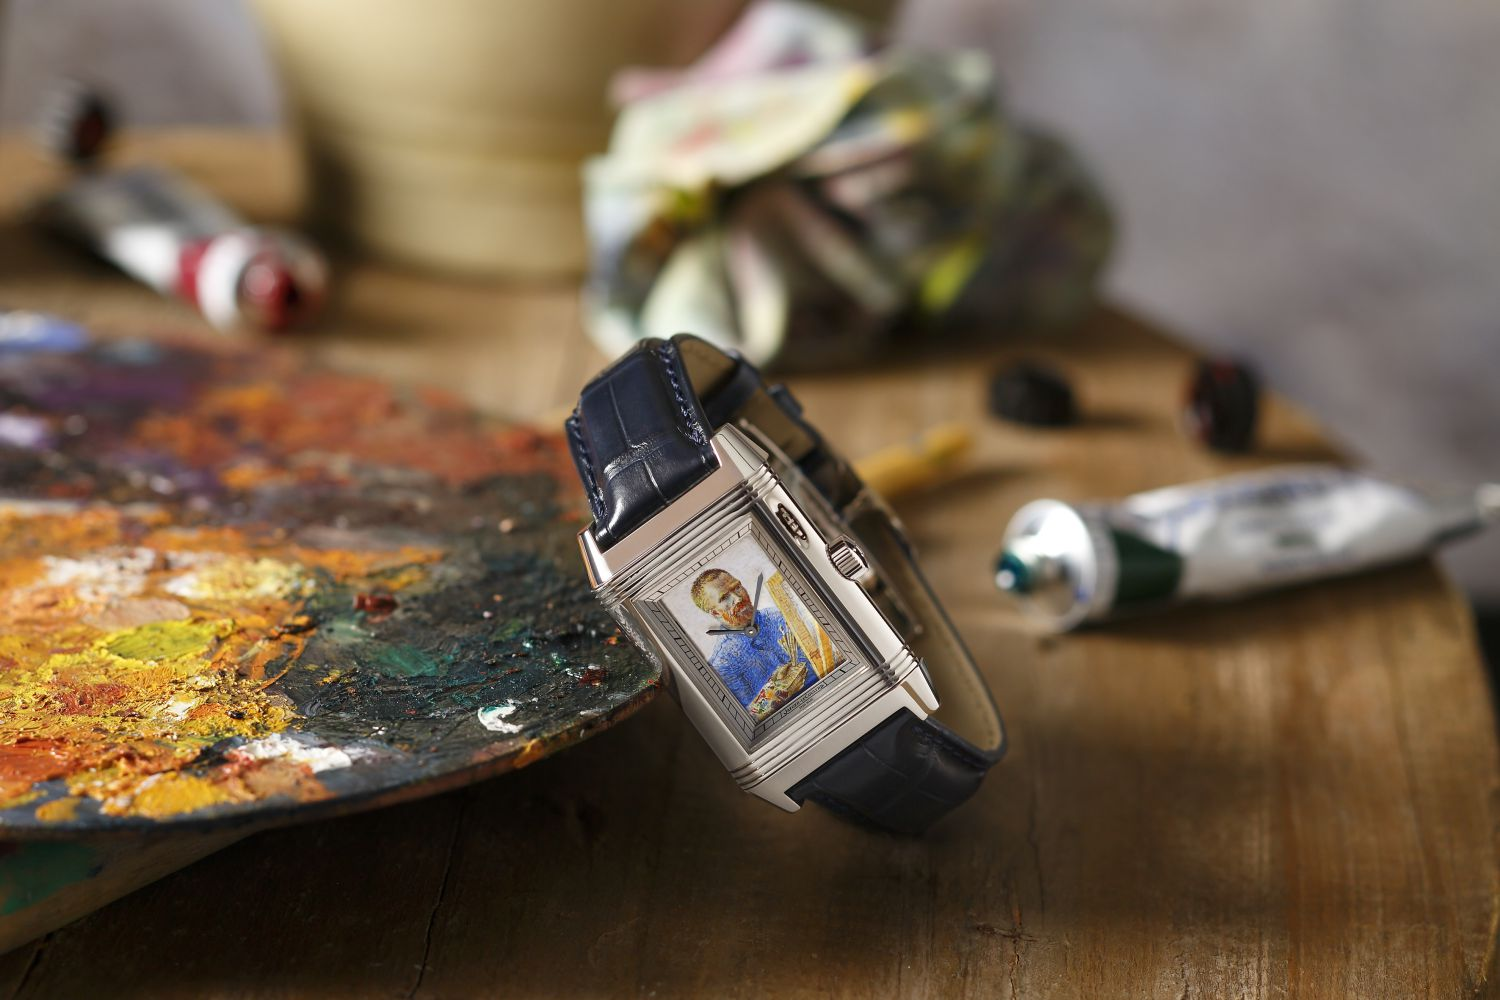 Jaeger-LeCoultre-Reverso-Tribute-to-Vincent-van-Gogh-5.jpg